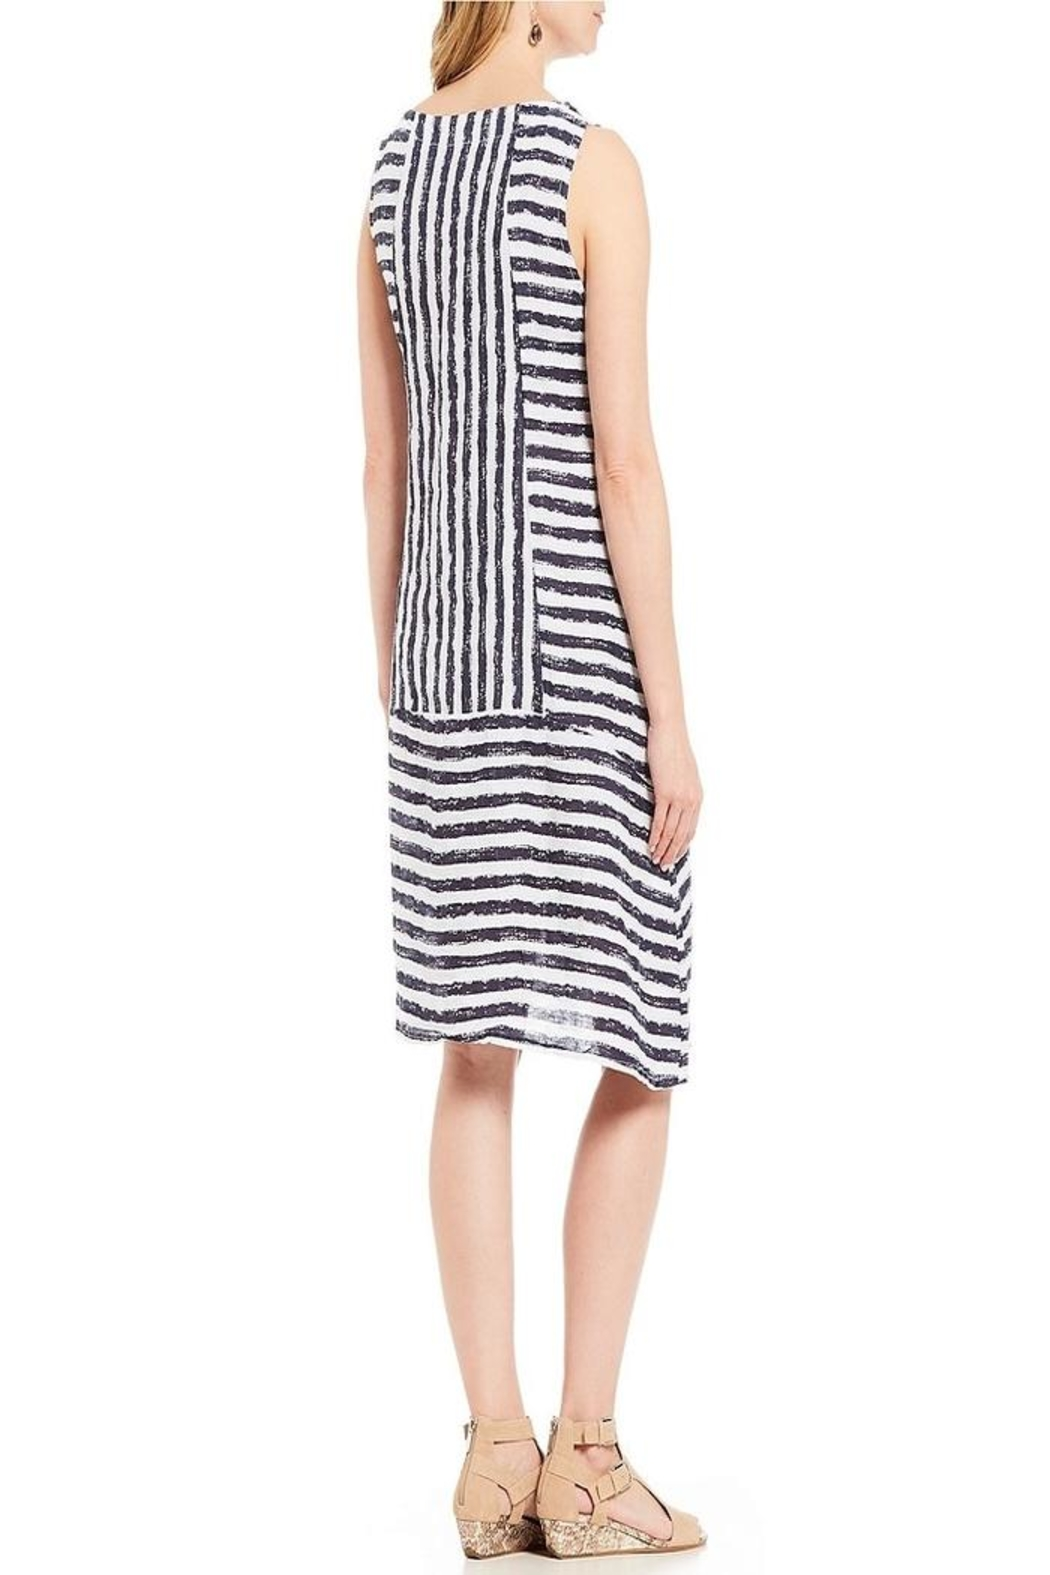 M made in Italy Strip Dress - Front Full Image